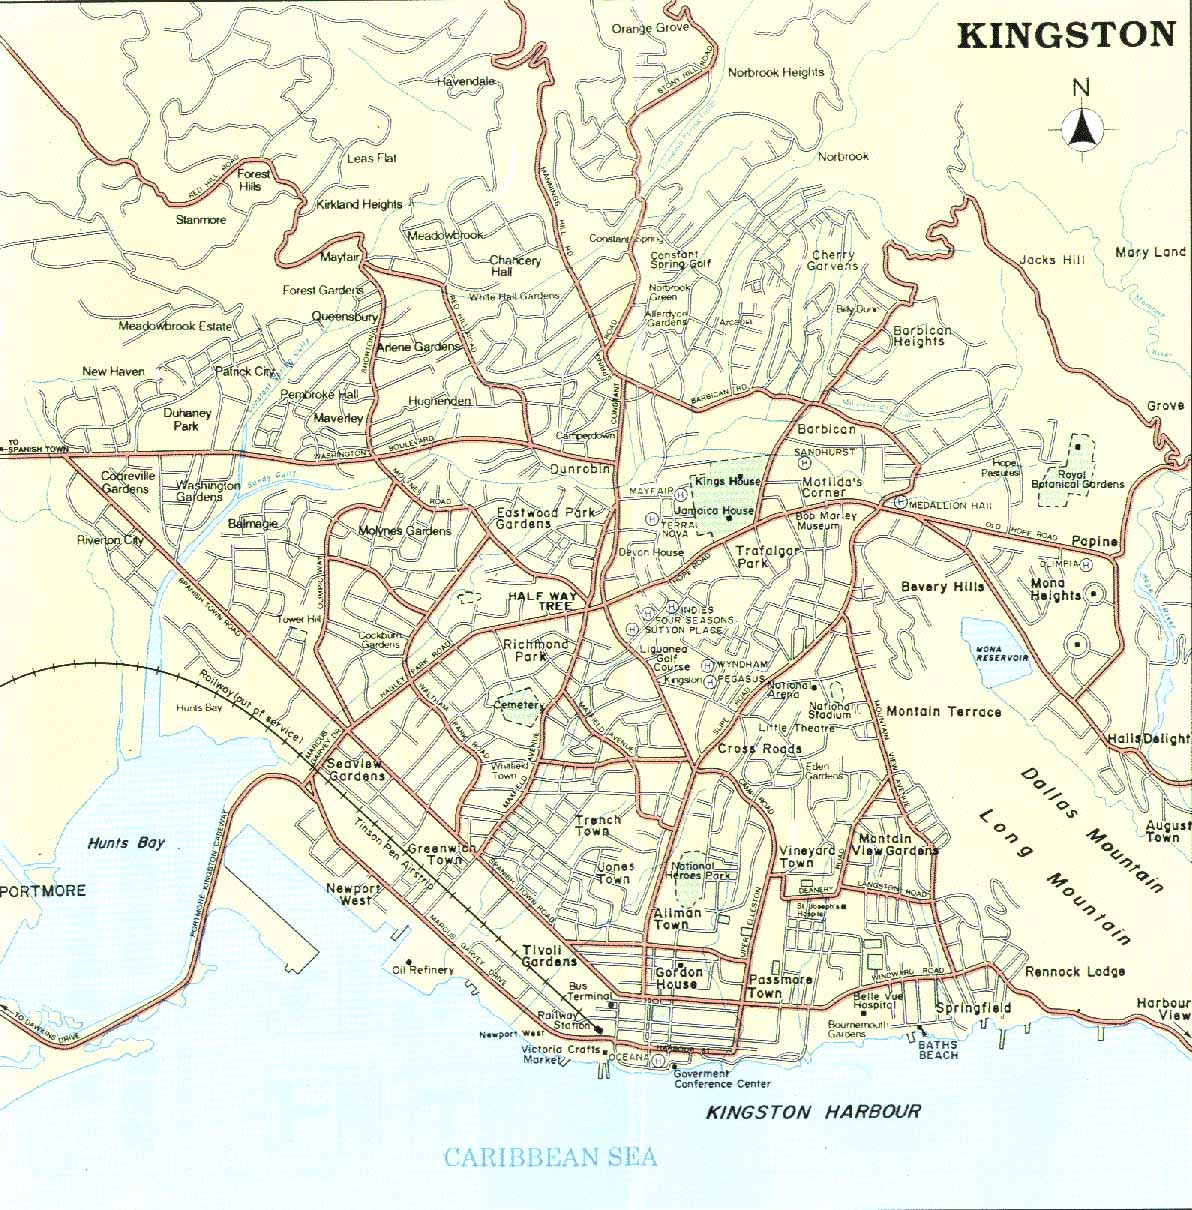 st rico town jamaica map ann puerto of